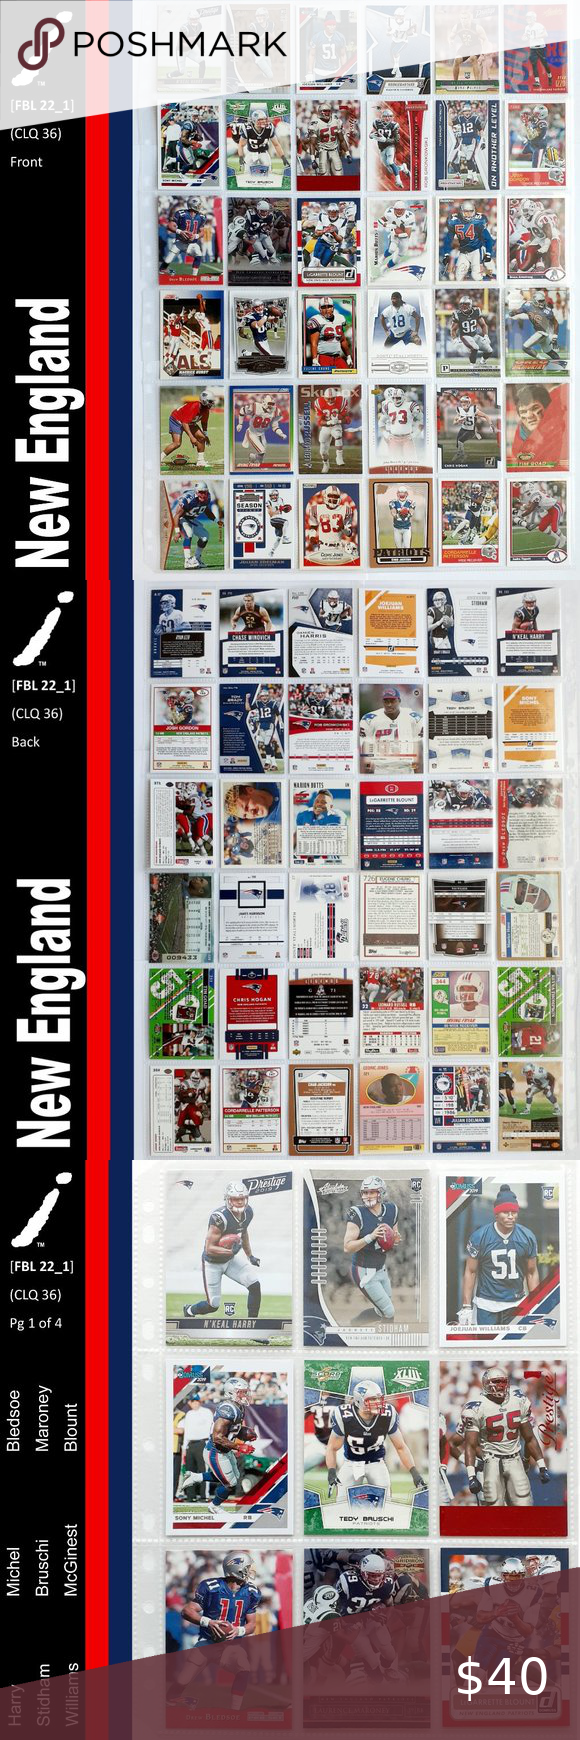 New England Patriots 36 Player Card Lot Fbl13 1 In 2020 Player Card New England Patriots Patriots